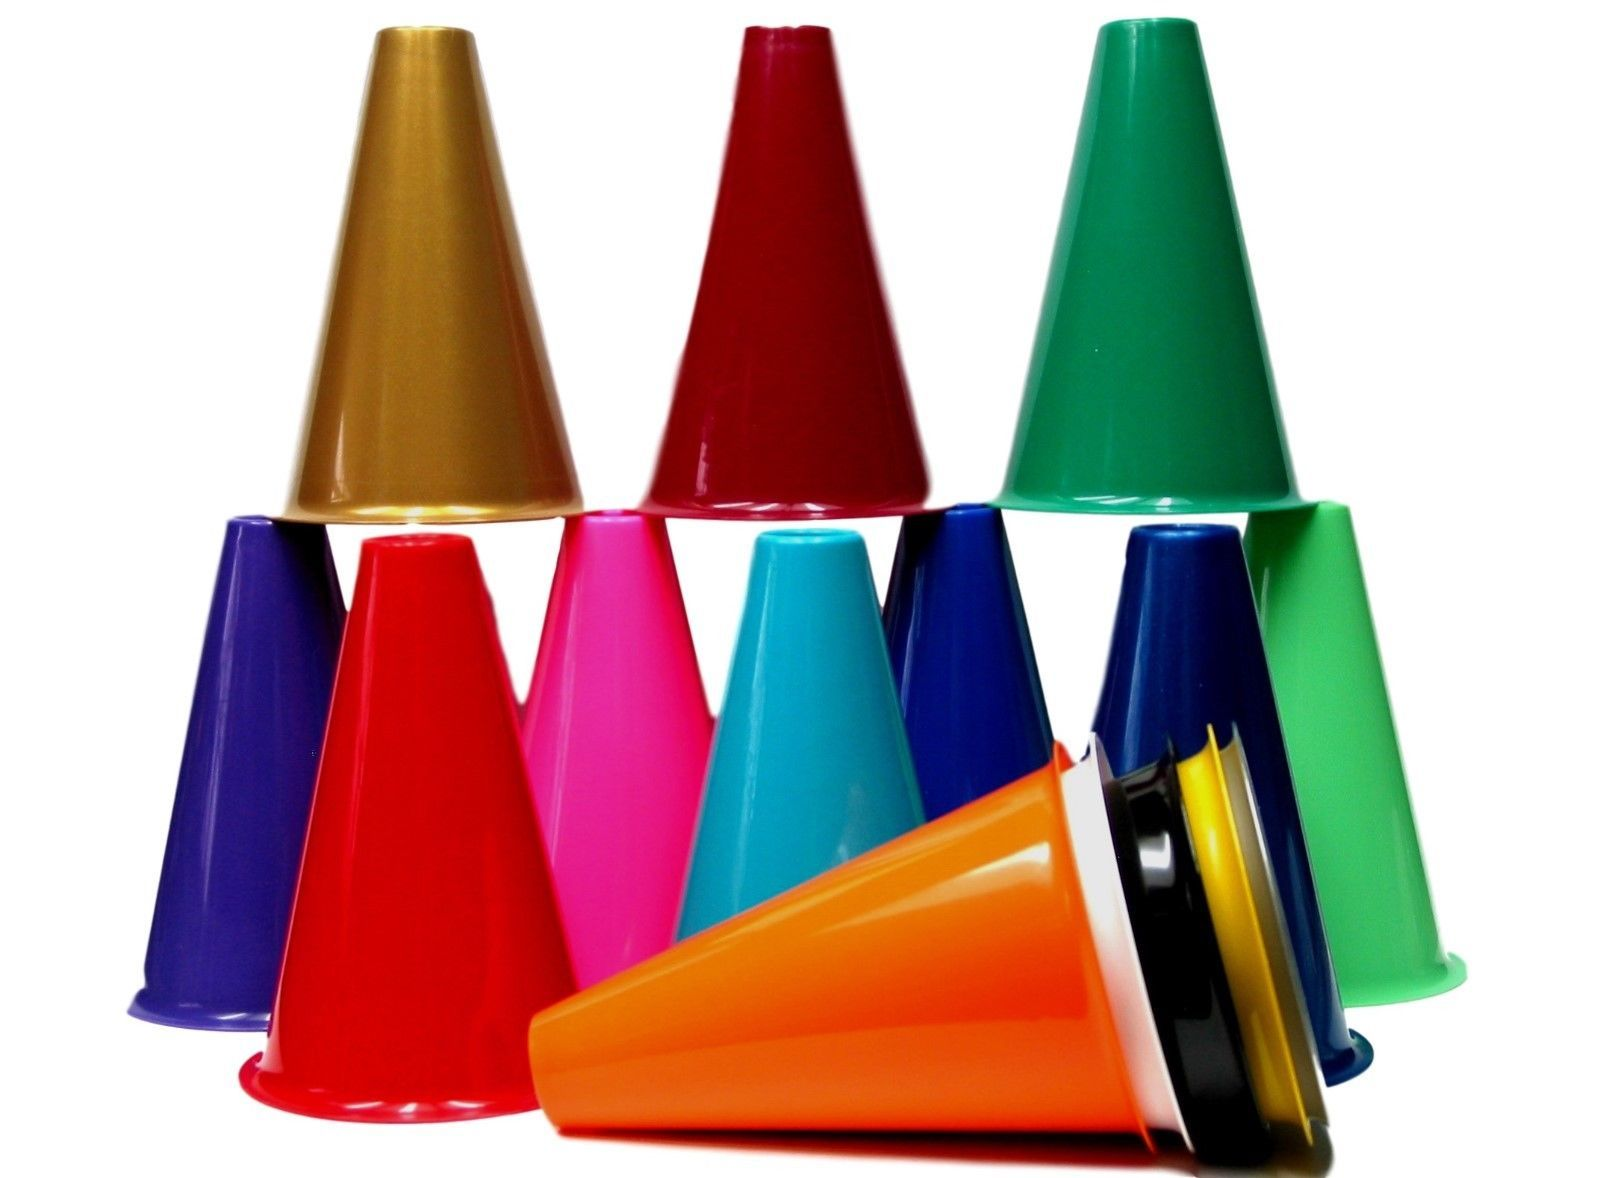 Primary image for 10 Cheer Leading Megaphones, 8 Inches Tall, Choice of Colors, Mfg USA Lead Free